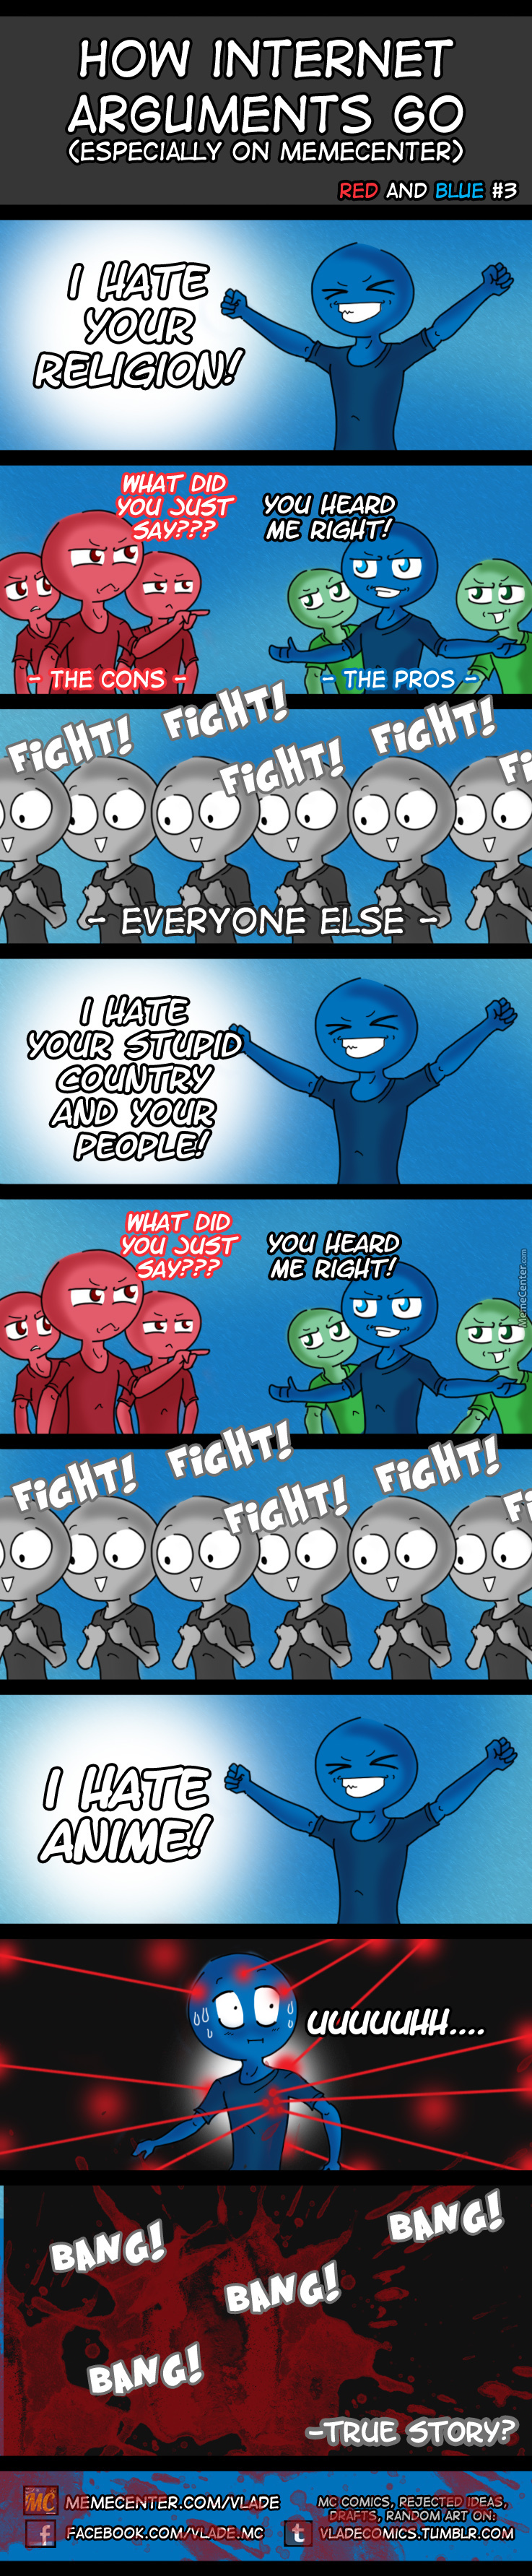 Red And Blue #3: Internet Arguments